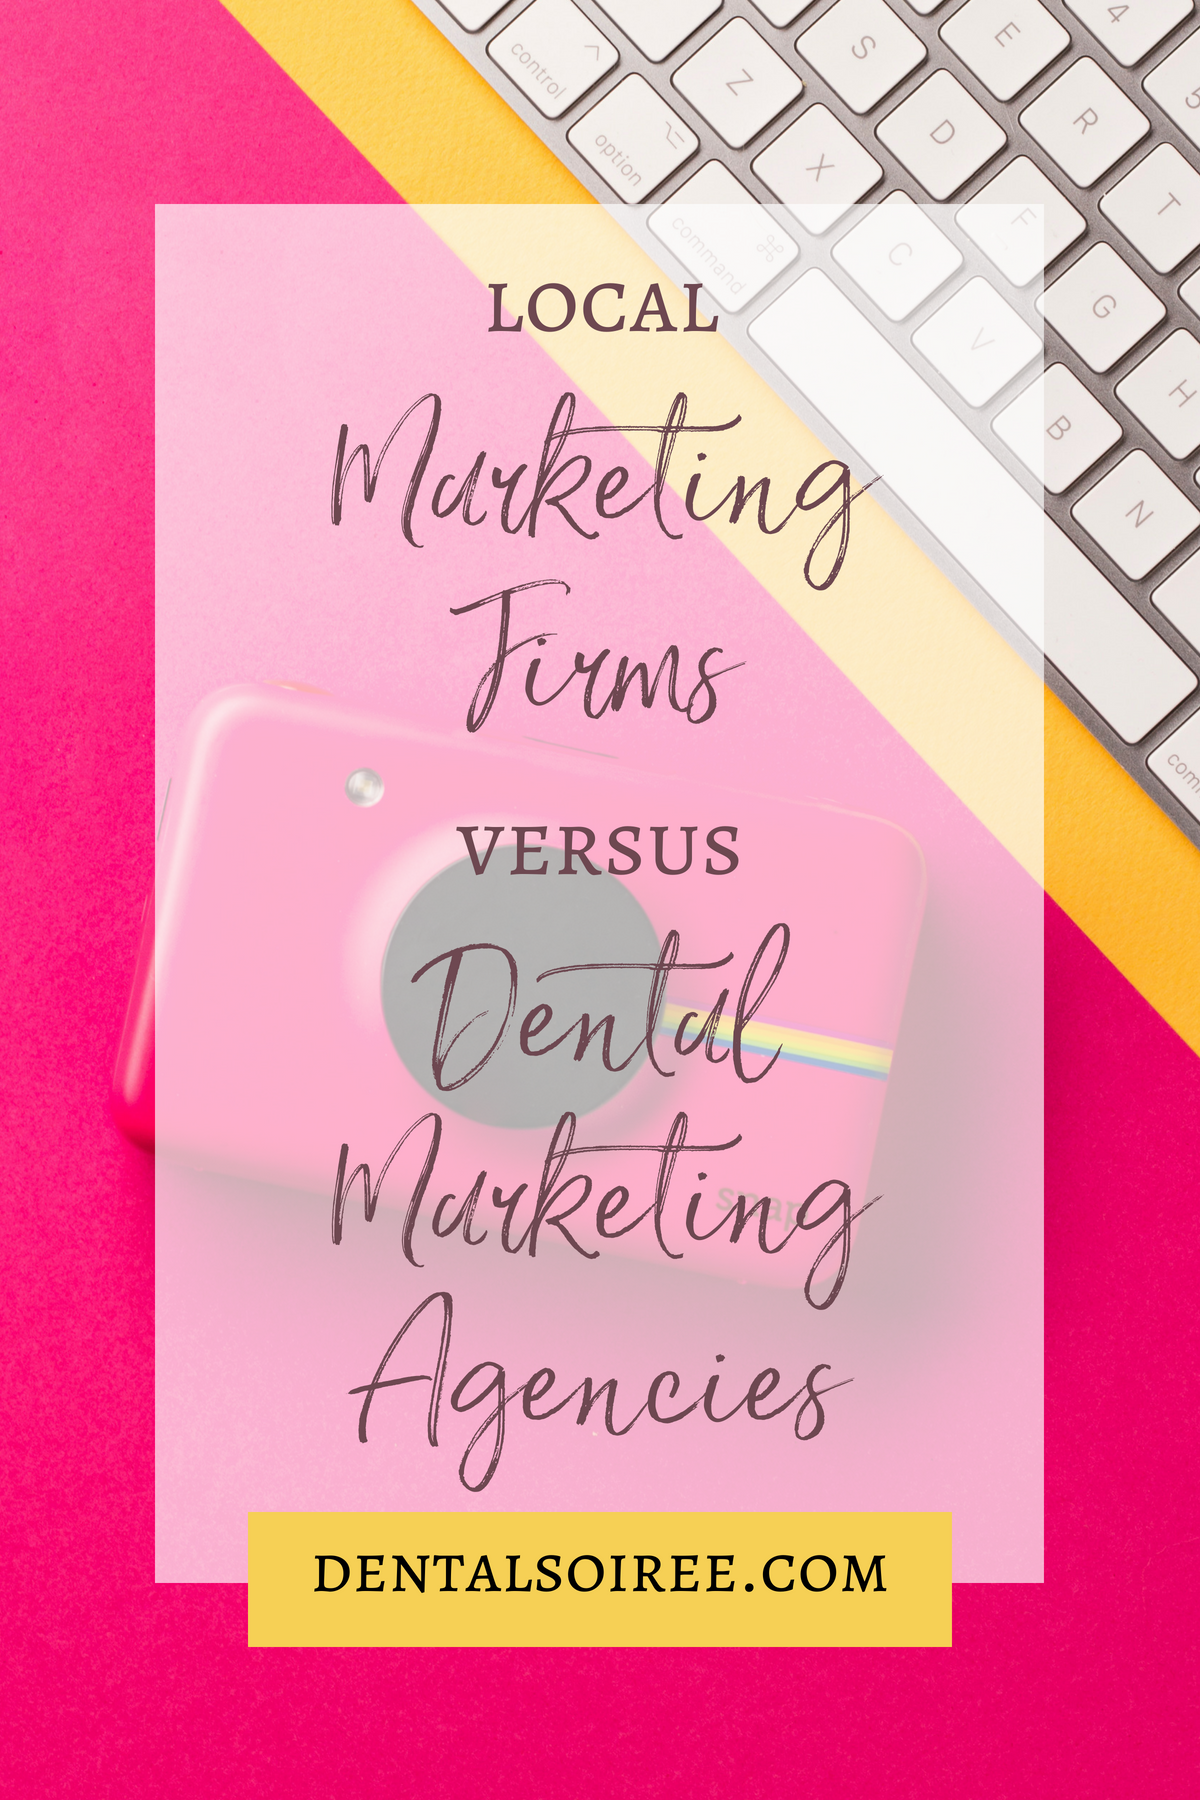 Should You Use a Local Marketing Firm or a Dental Marketing Agency?